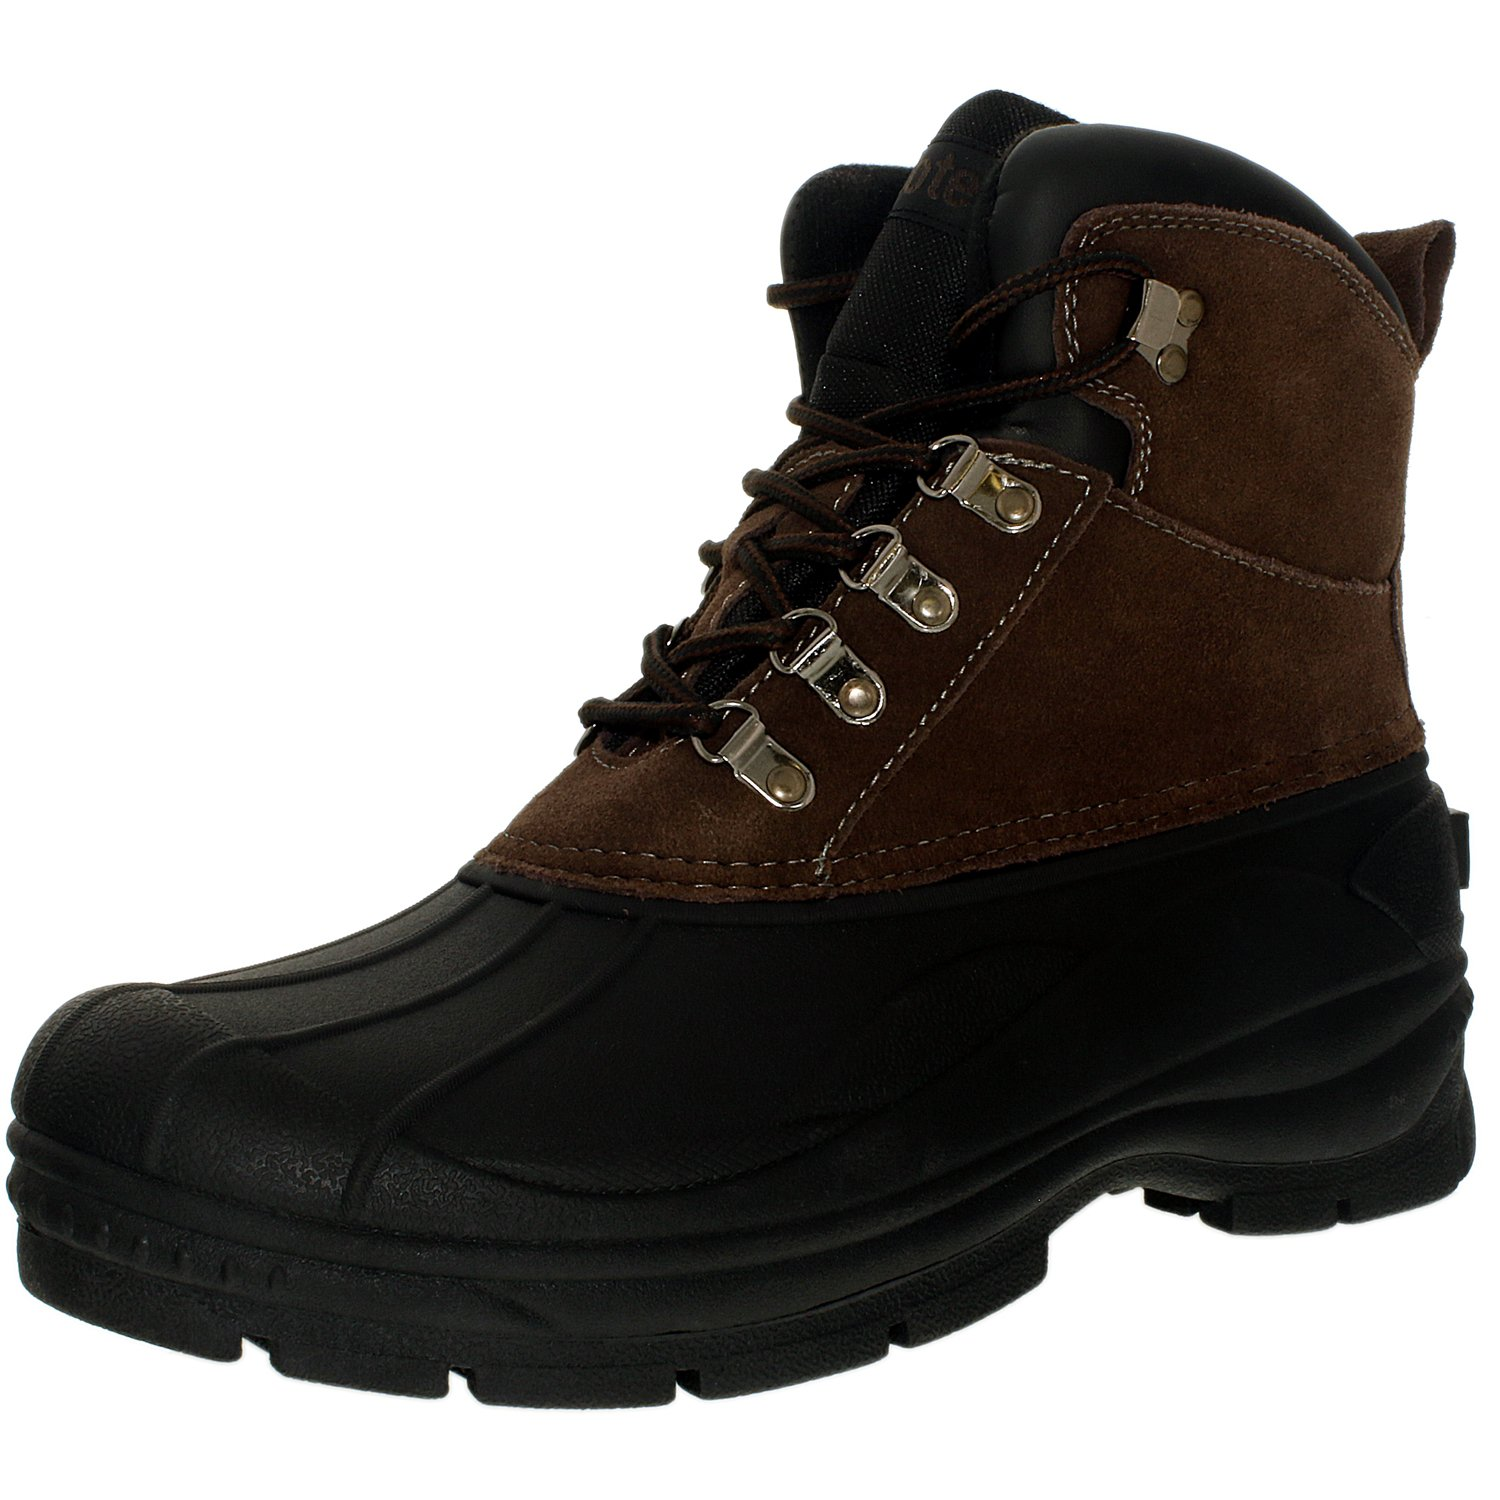 TOTES Men's Glacier-Lace Ankle-High Leather Boot